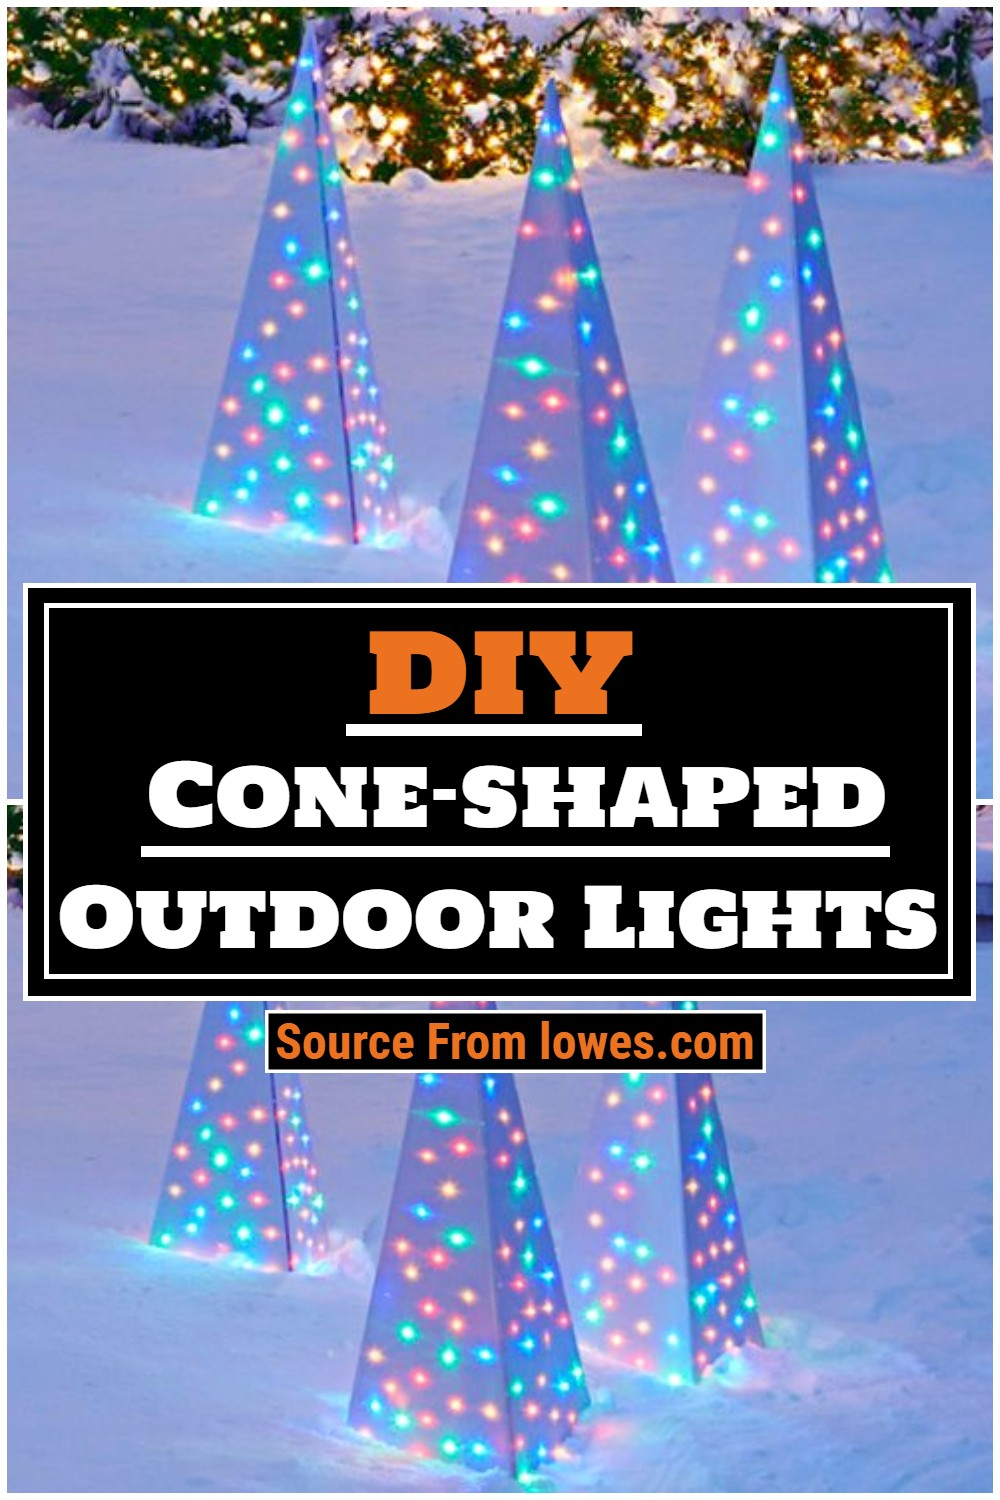 Cone-shaped Outdoor Lights